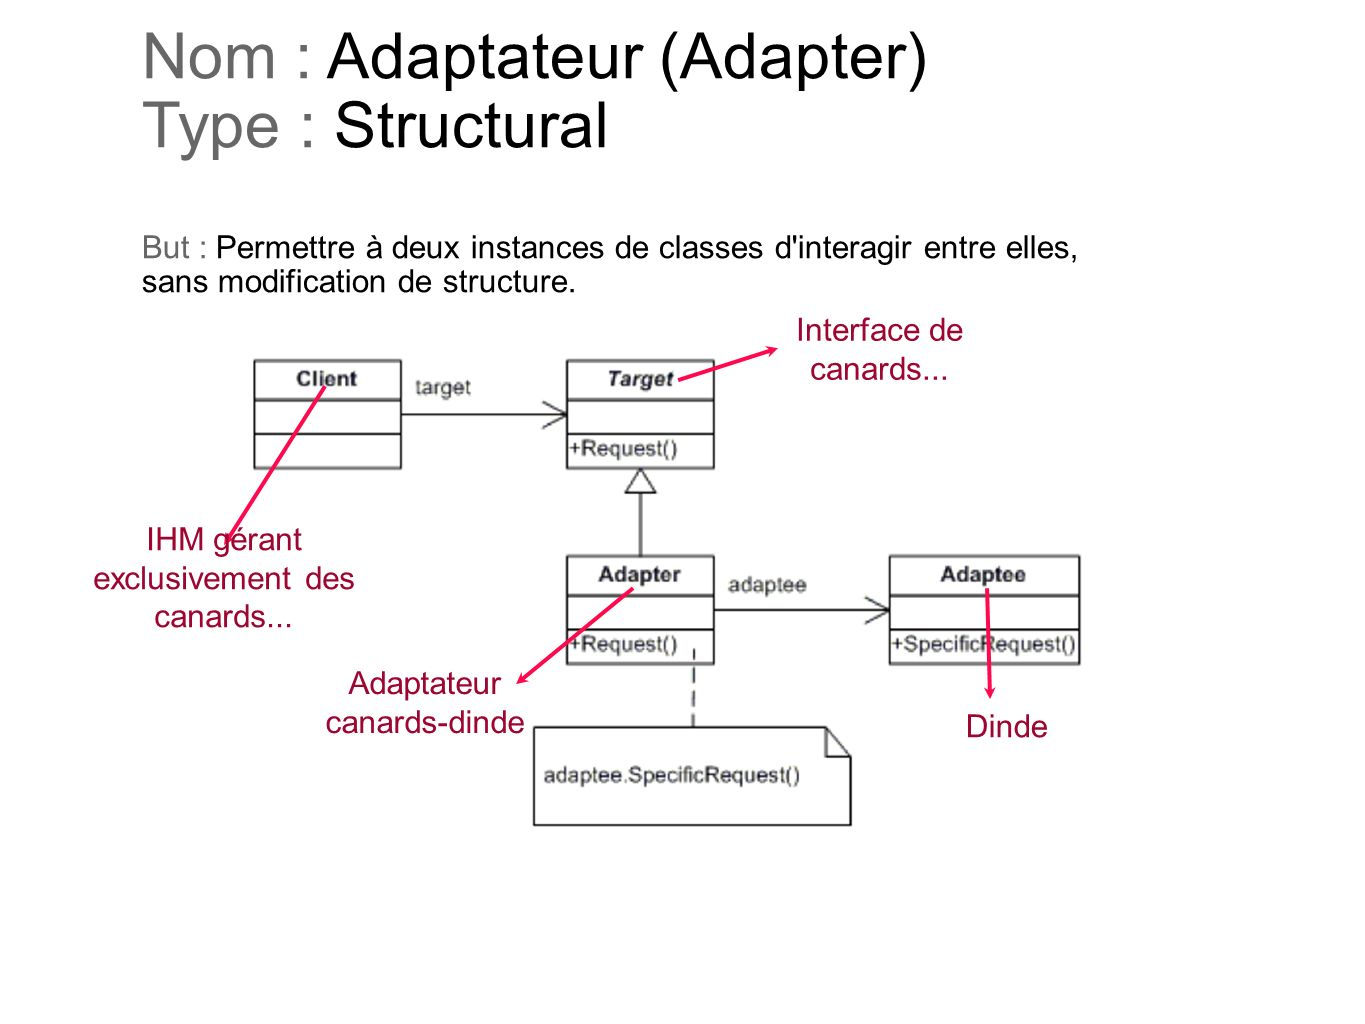 Nom : Adaptateur (Adapter) Type : Structural But : Permettre à deux instances de classes d'interagir entre elles, sans modification de structure. IHM